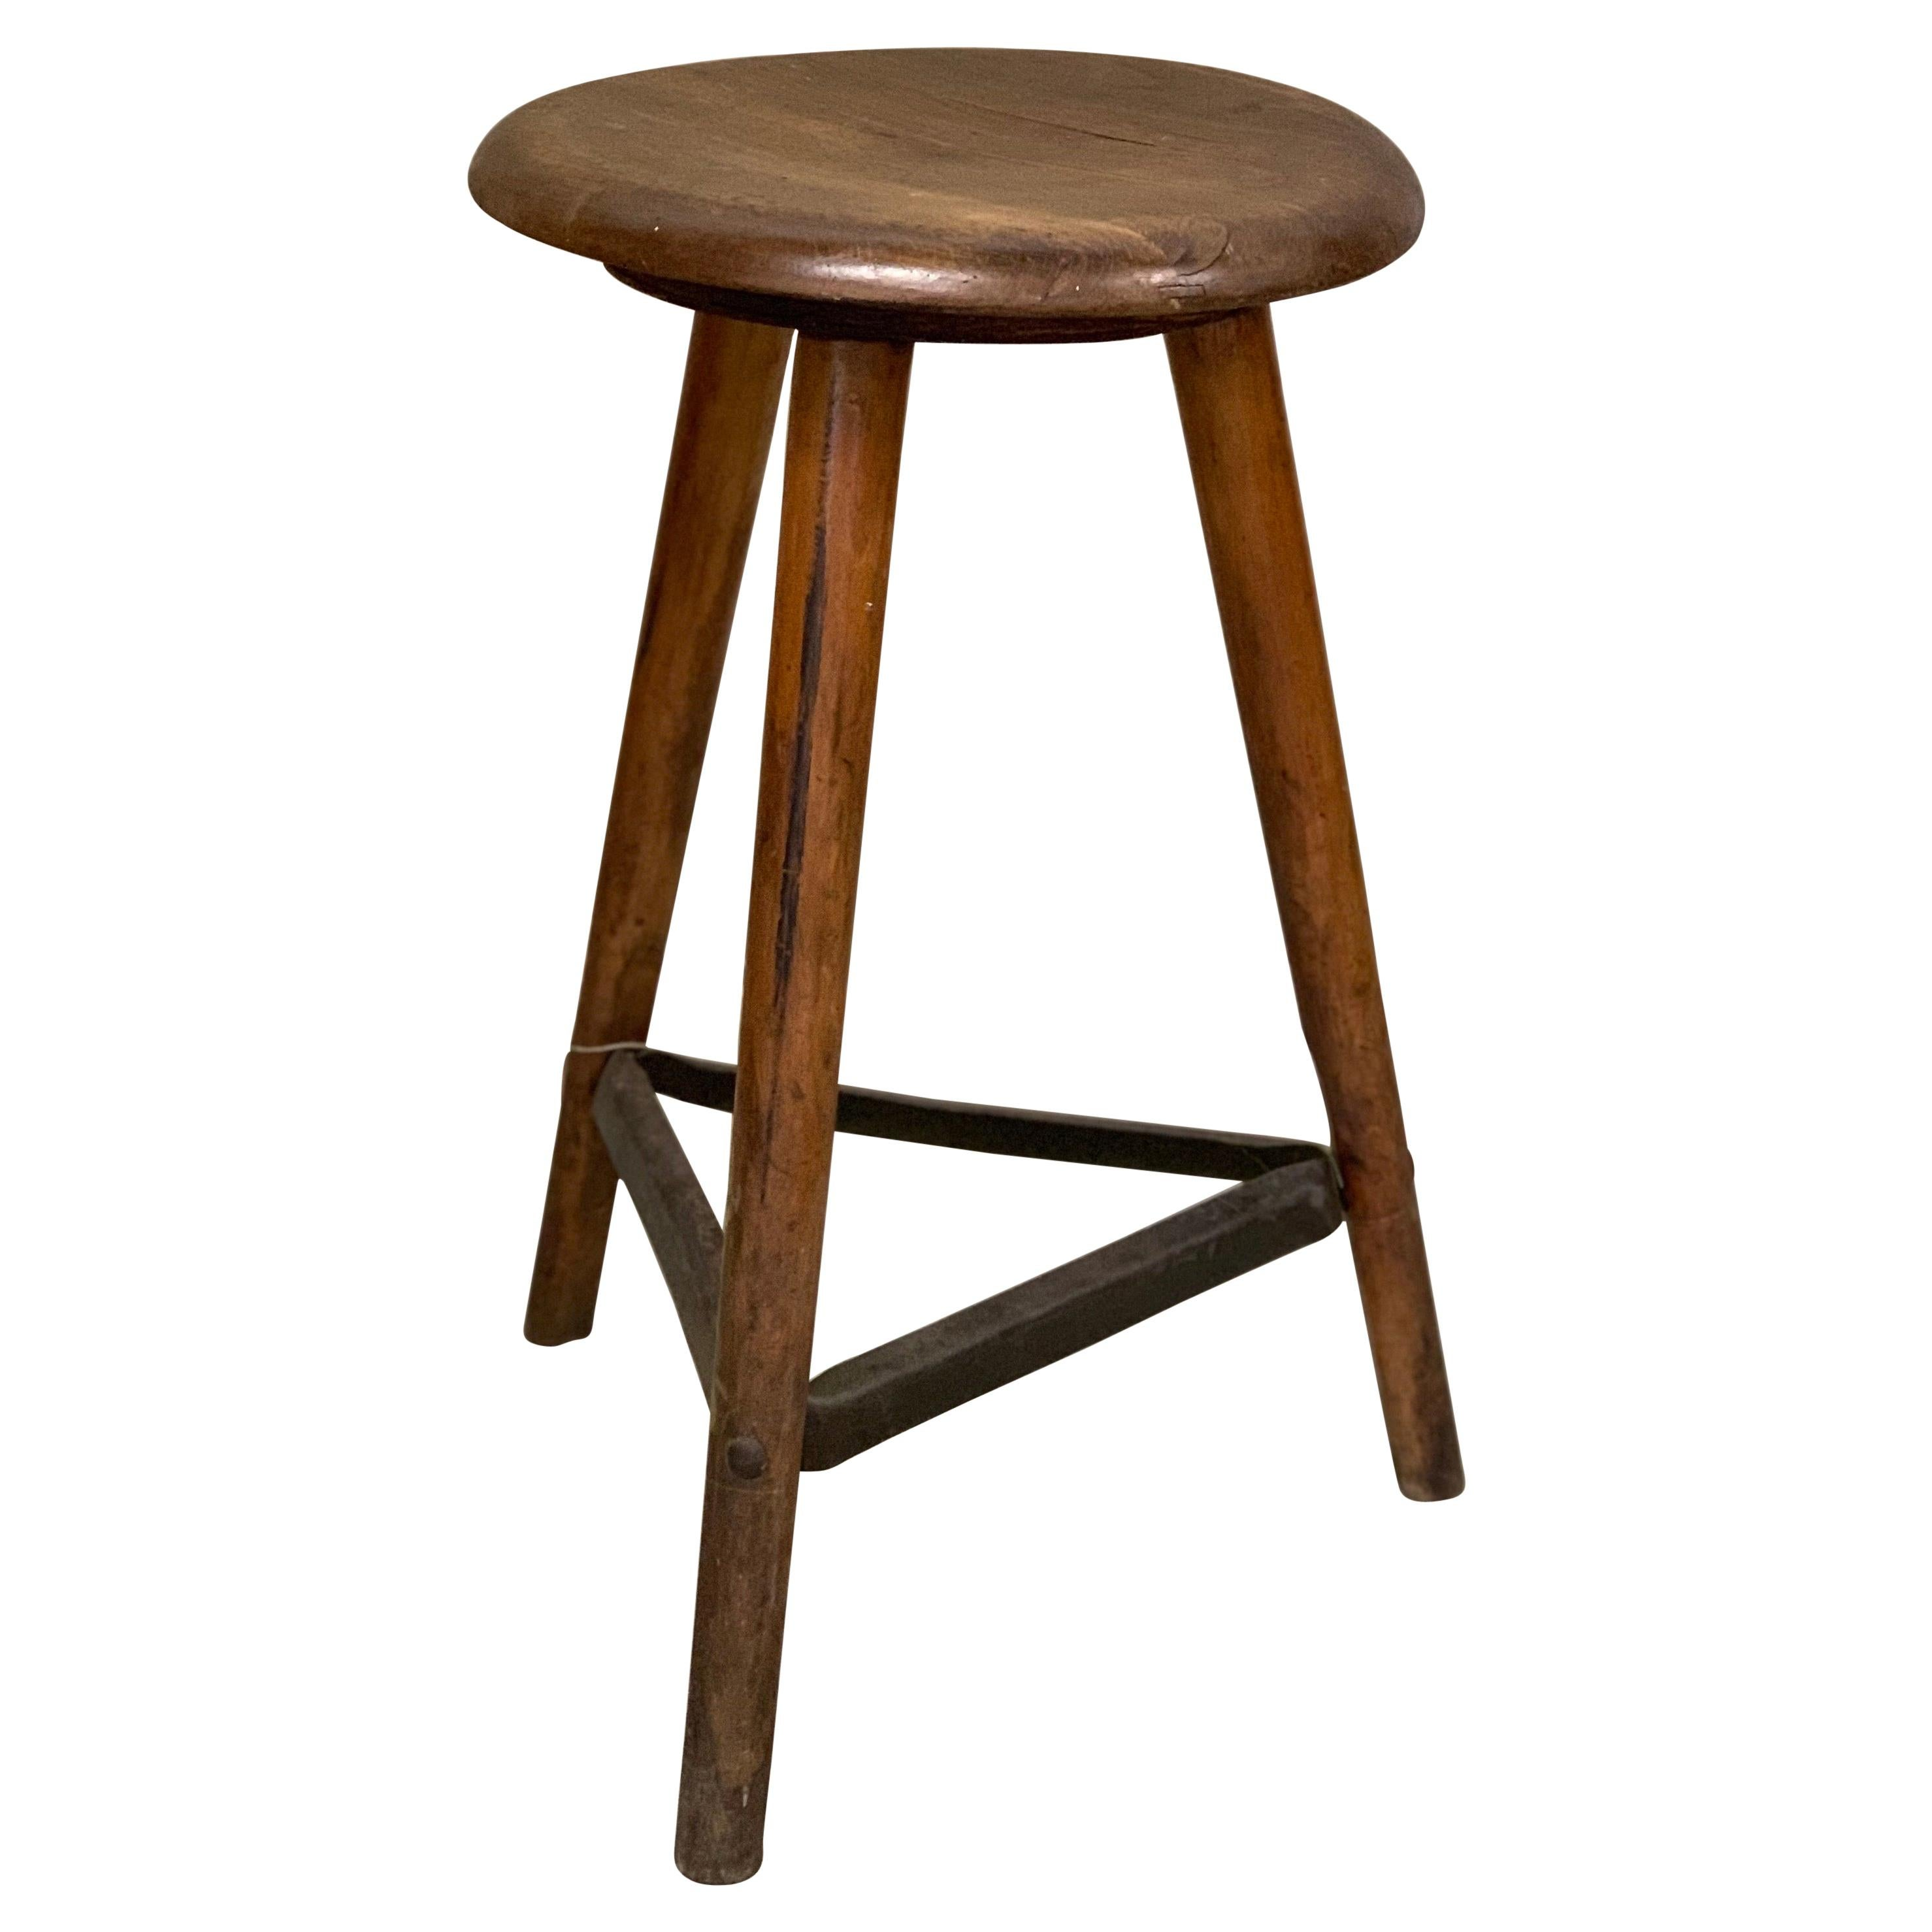 1920's Ama Wooden Industrial Stool